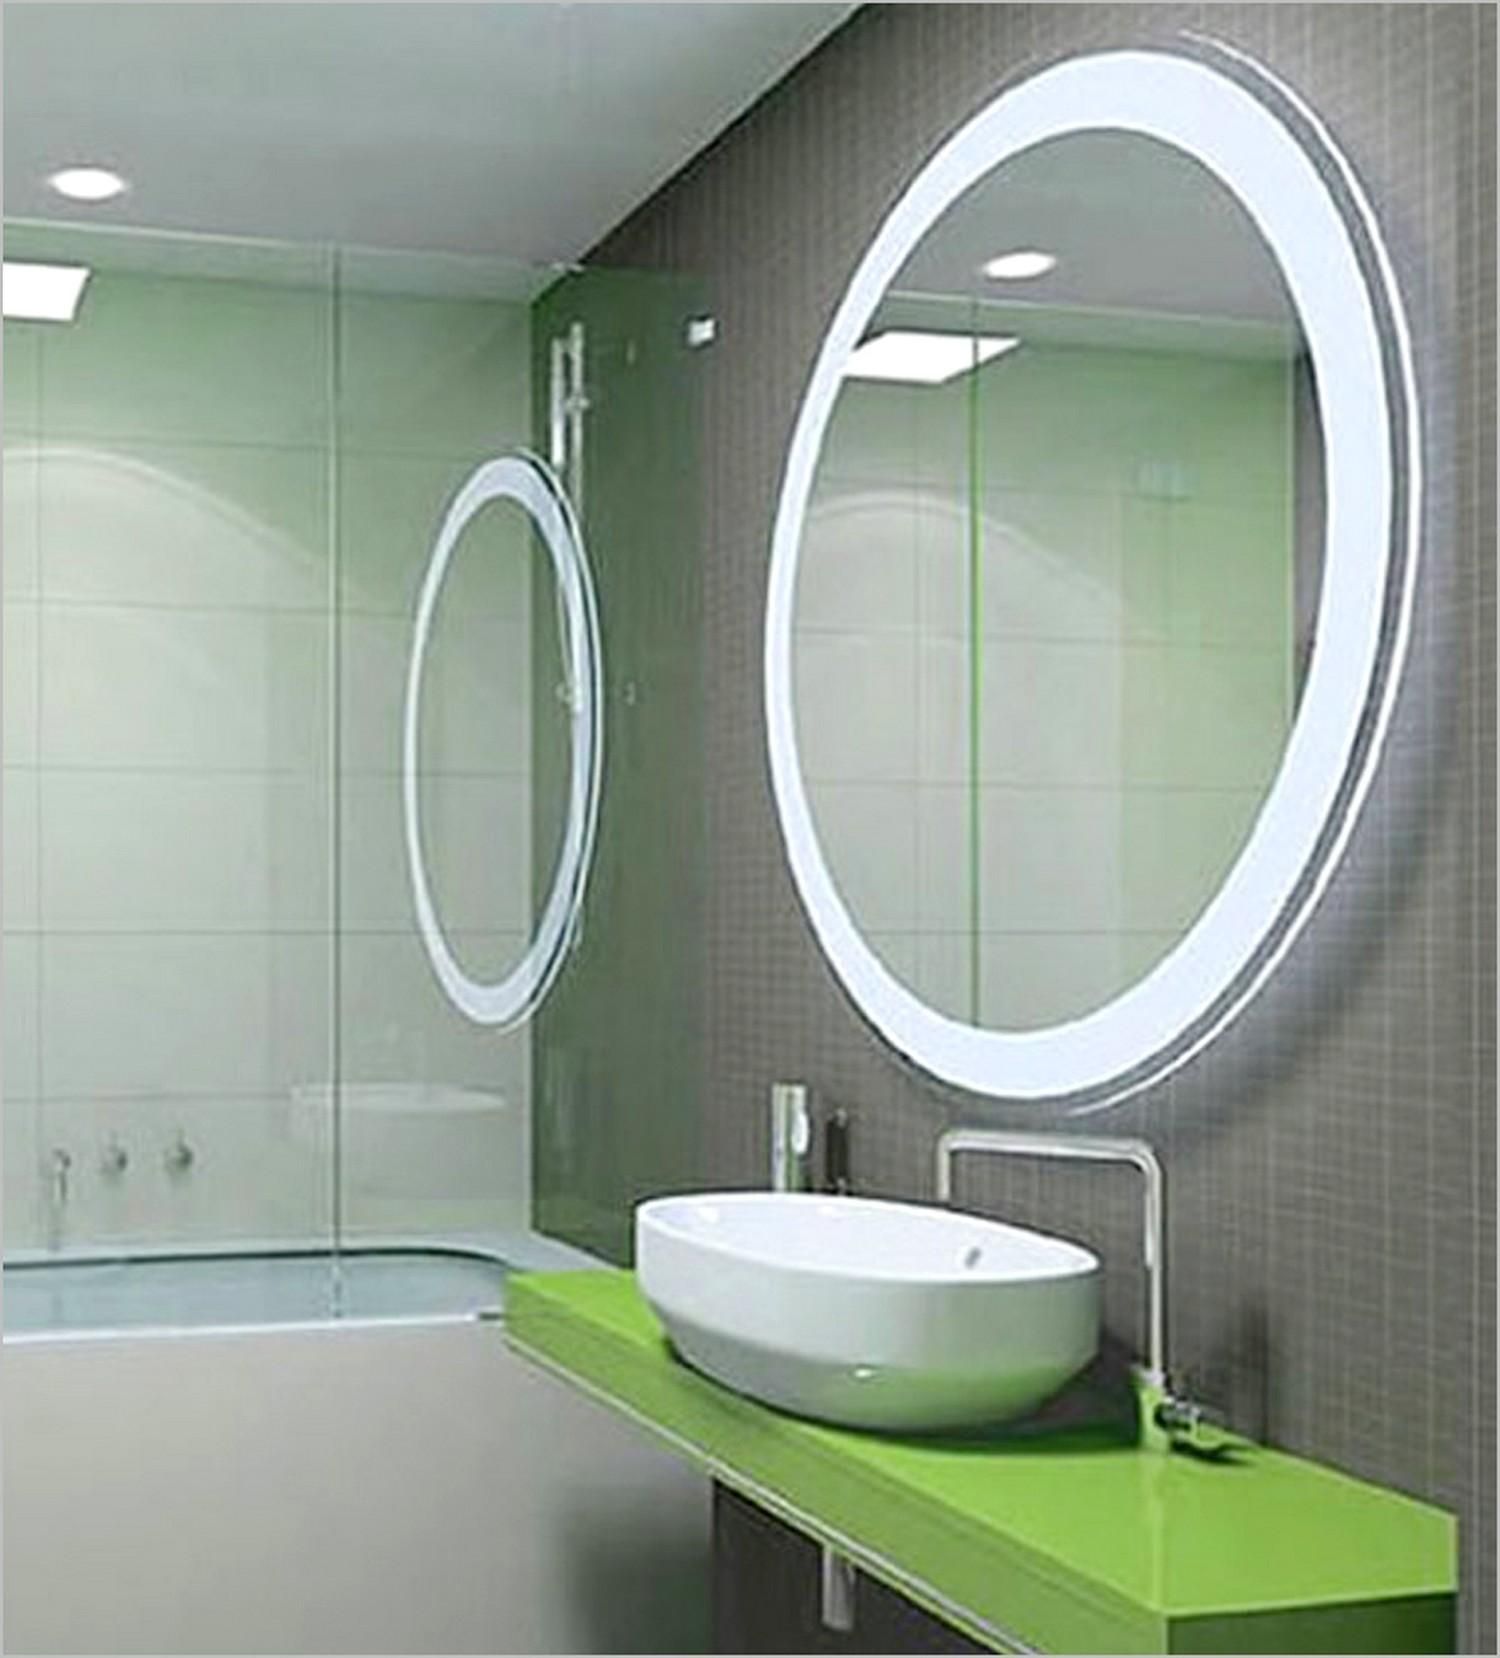 Oval Wall Mirror With Led Light For Bathroom Ideas – Surripui Within Light Up Bathroom Mirrors (View 2 of 20)